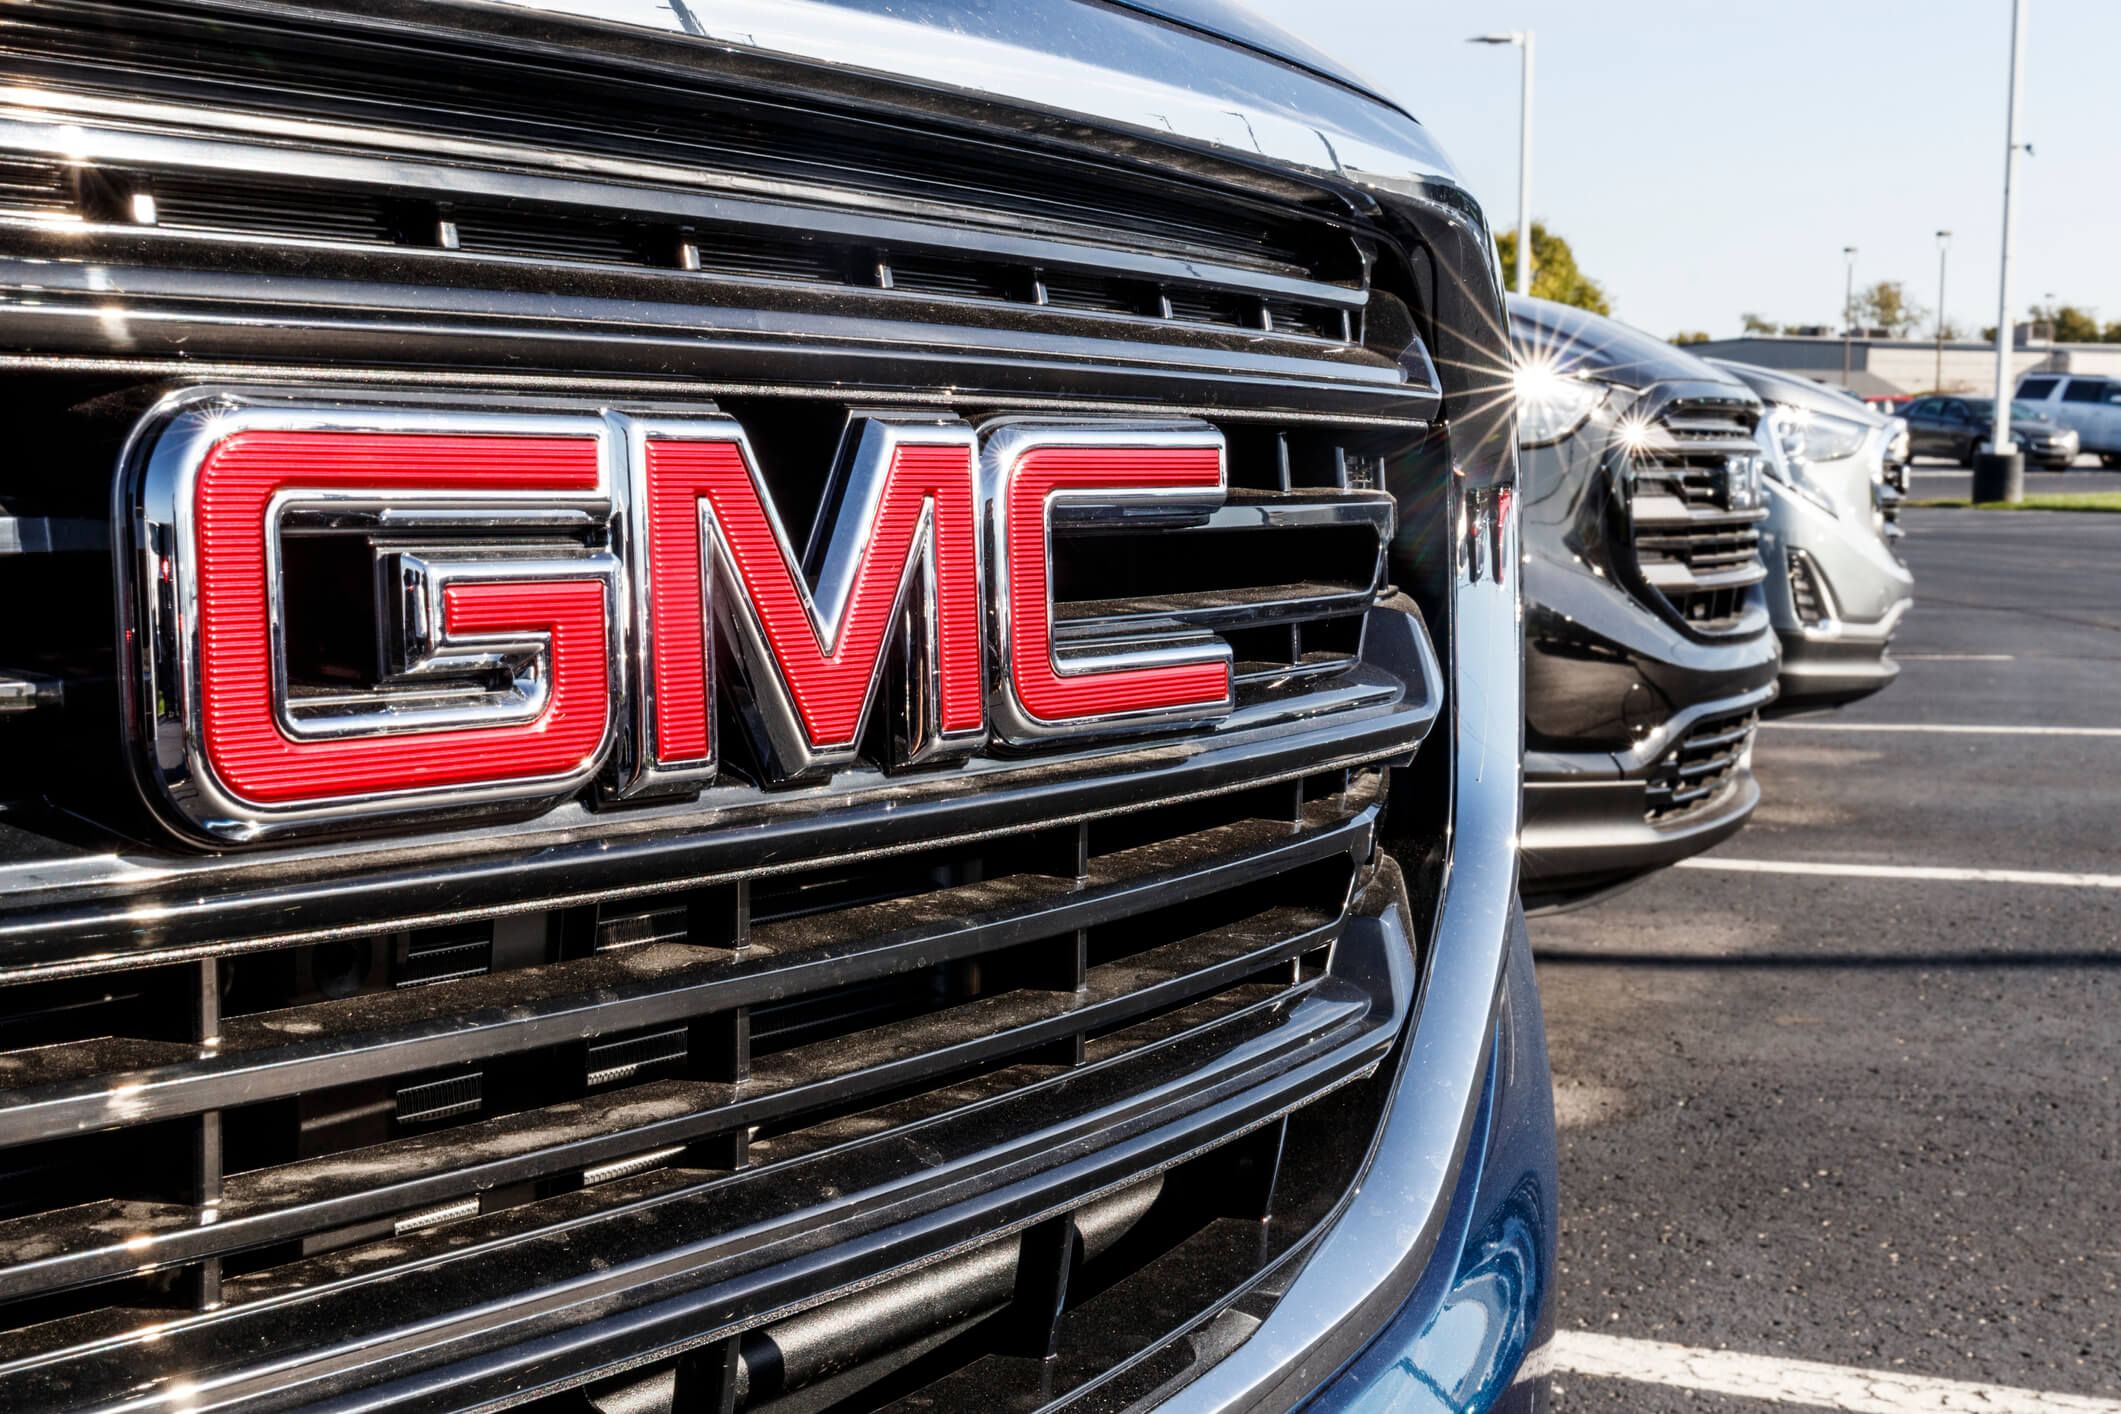 TheLemonFirm.com discusses the issues in GMC/Chevrolet issues with ESC warning lights and braking systems.